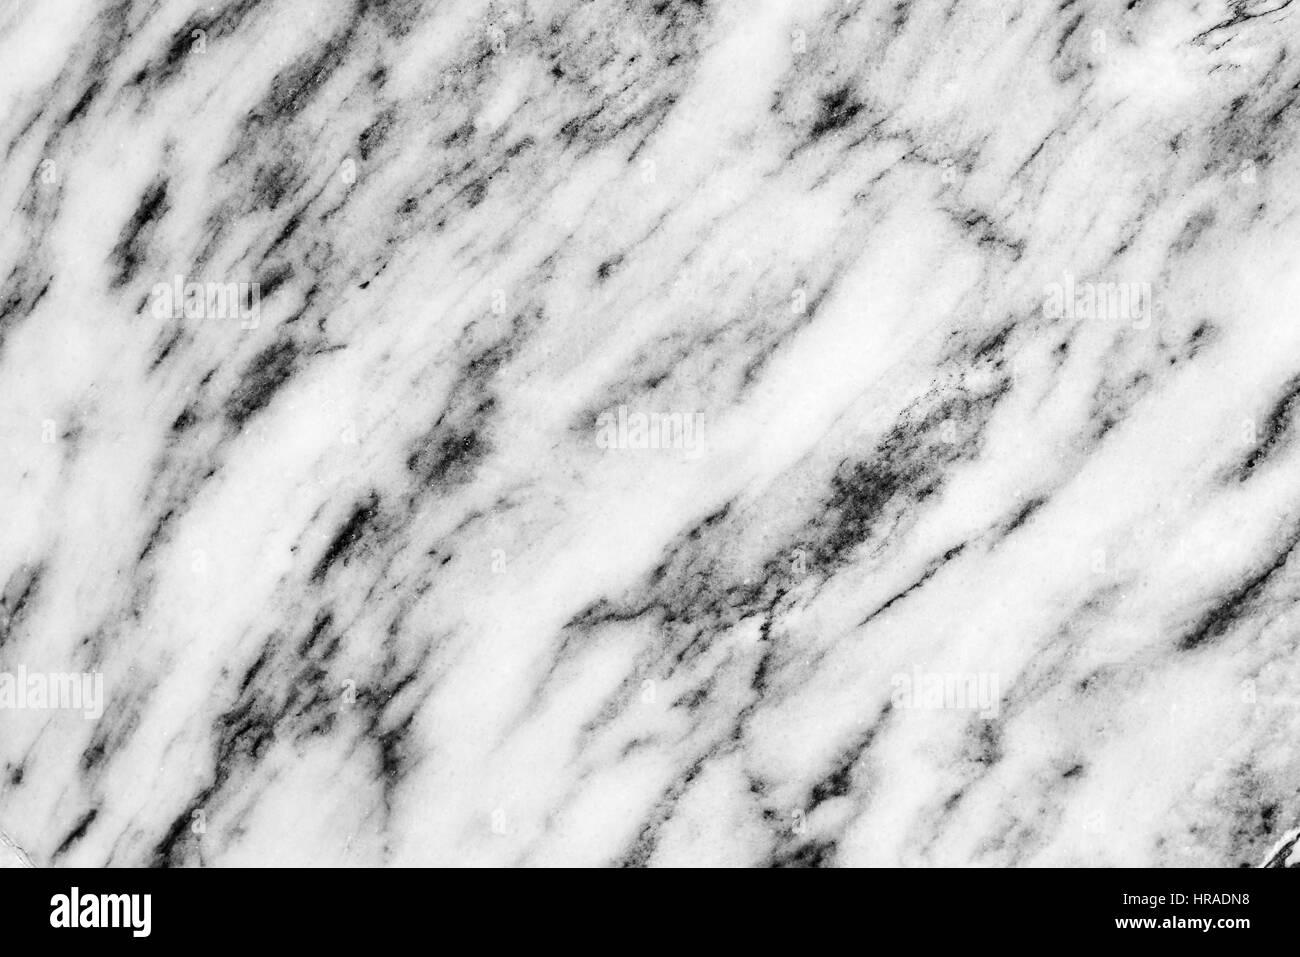 White Marble Texture Background High Resolution Stock Photo Alamy